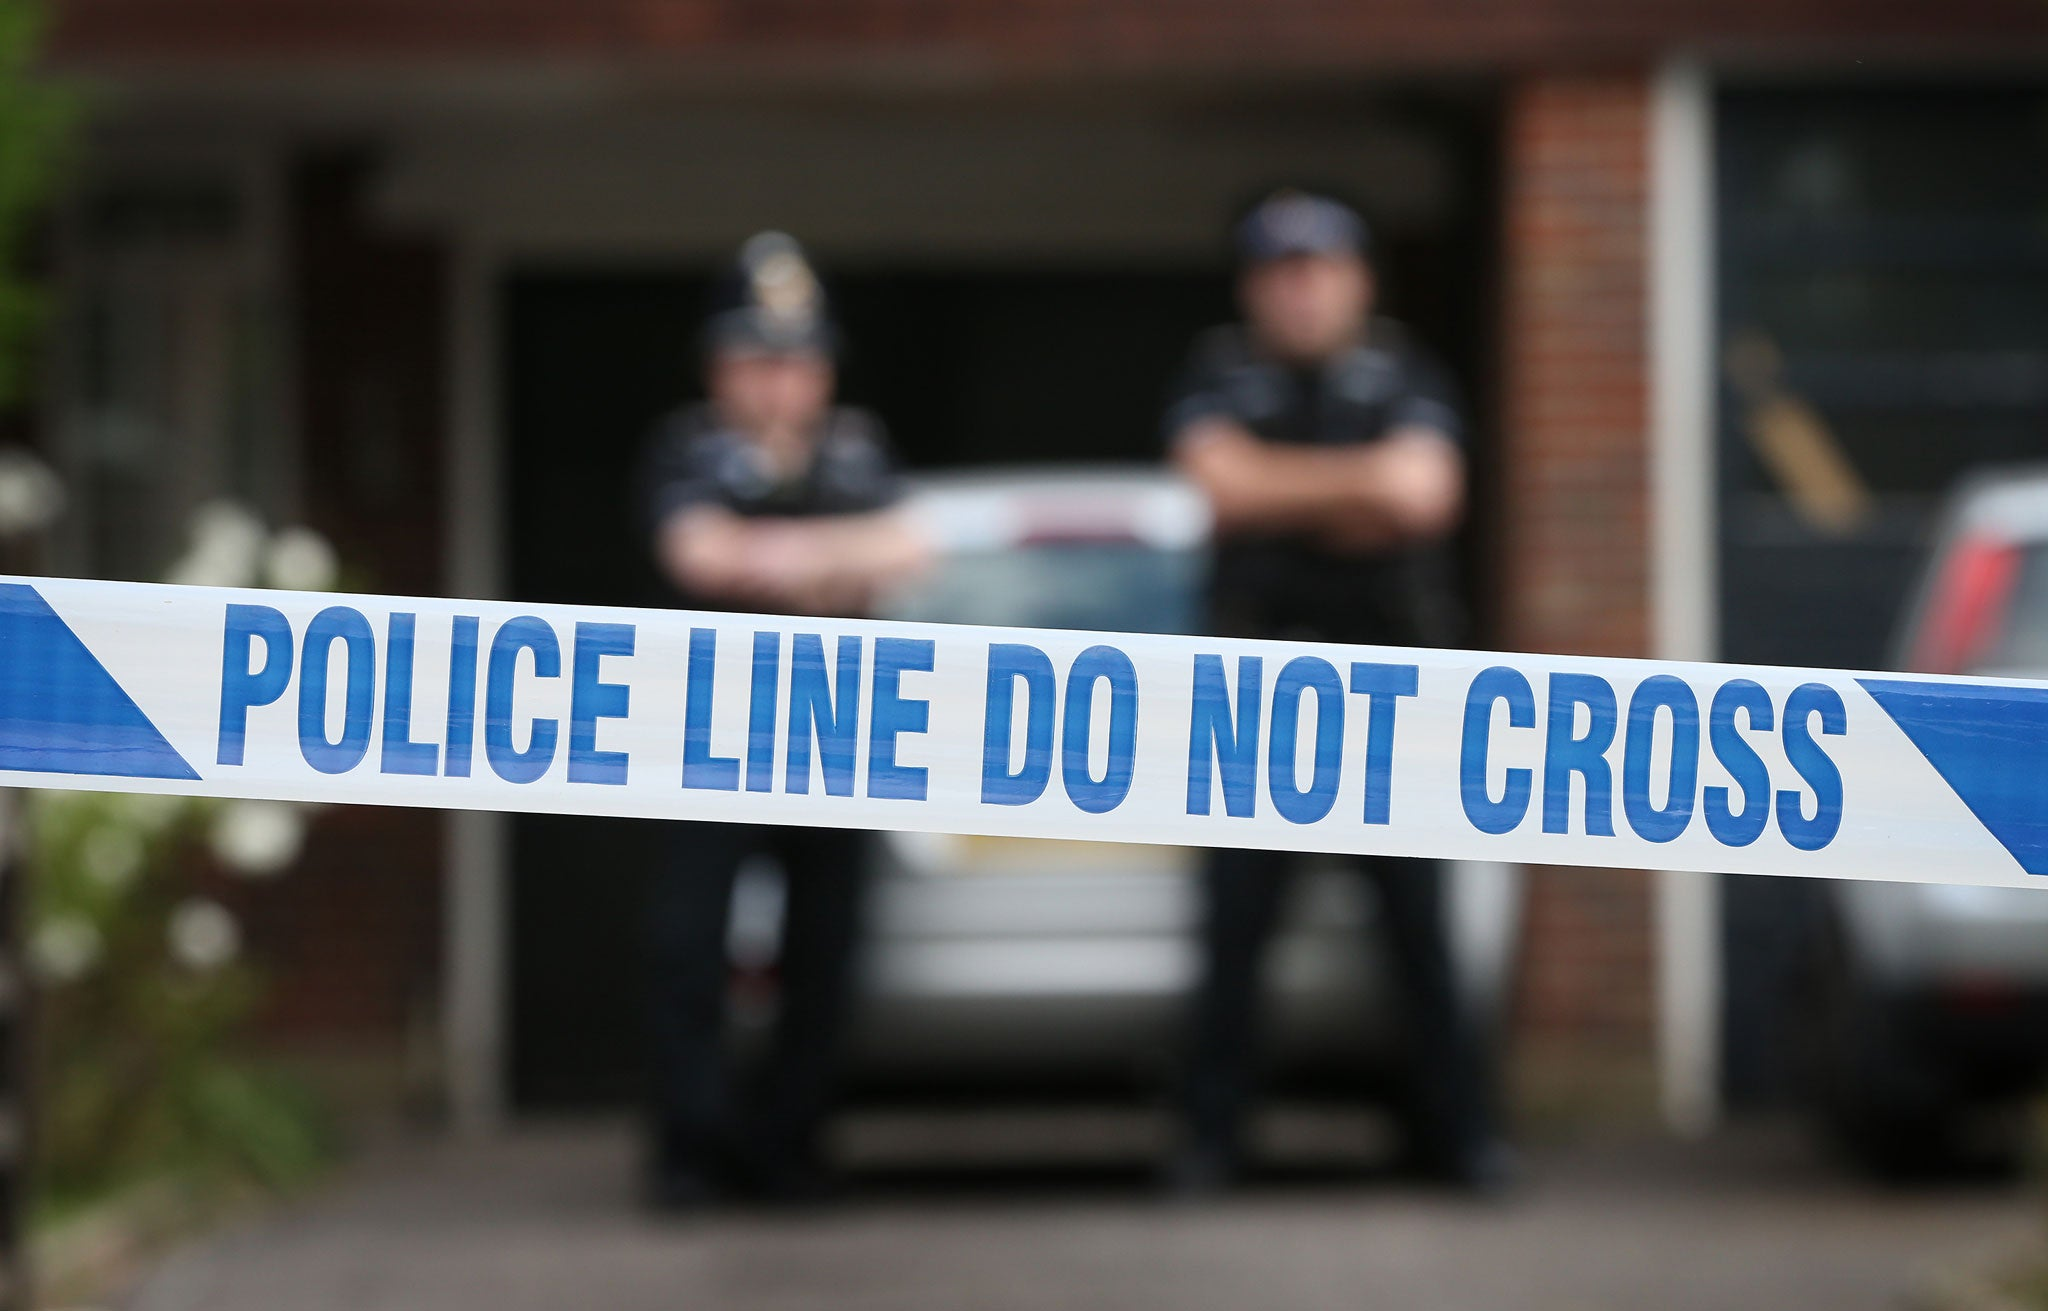 Bolton pensioner suffers stroke during burglary ordeal | The Independentindependent_brand_ident_LOGOUntitled